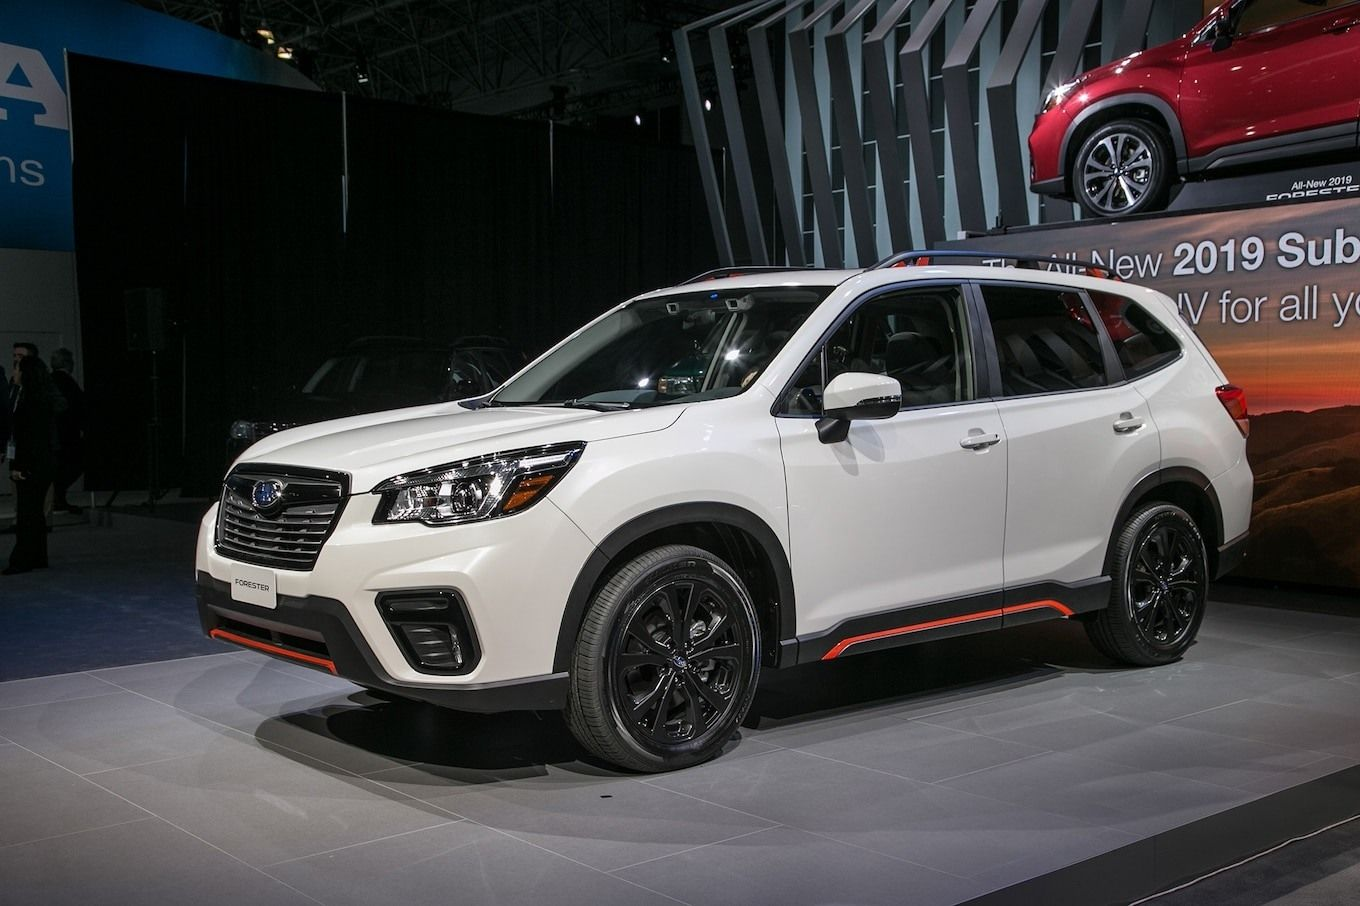 2019 Subaru Forester Colors Specs And Review Subaru Forester Subaru Outback Subaru